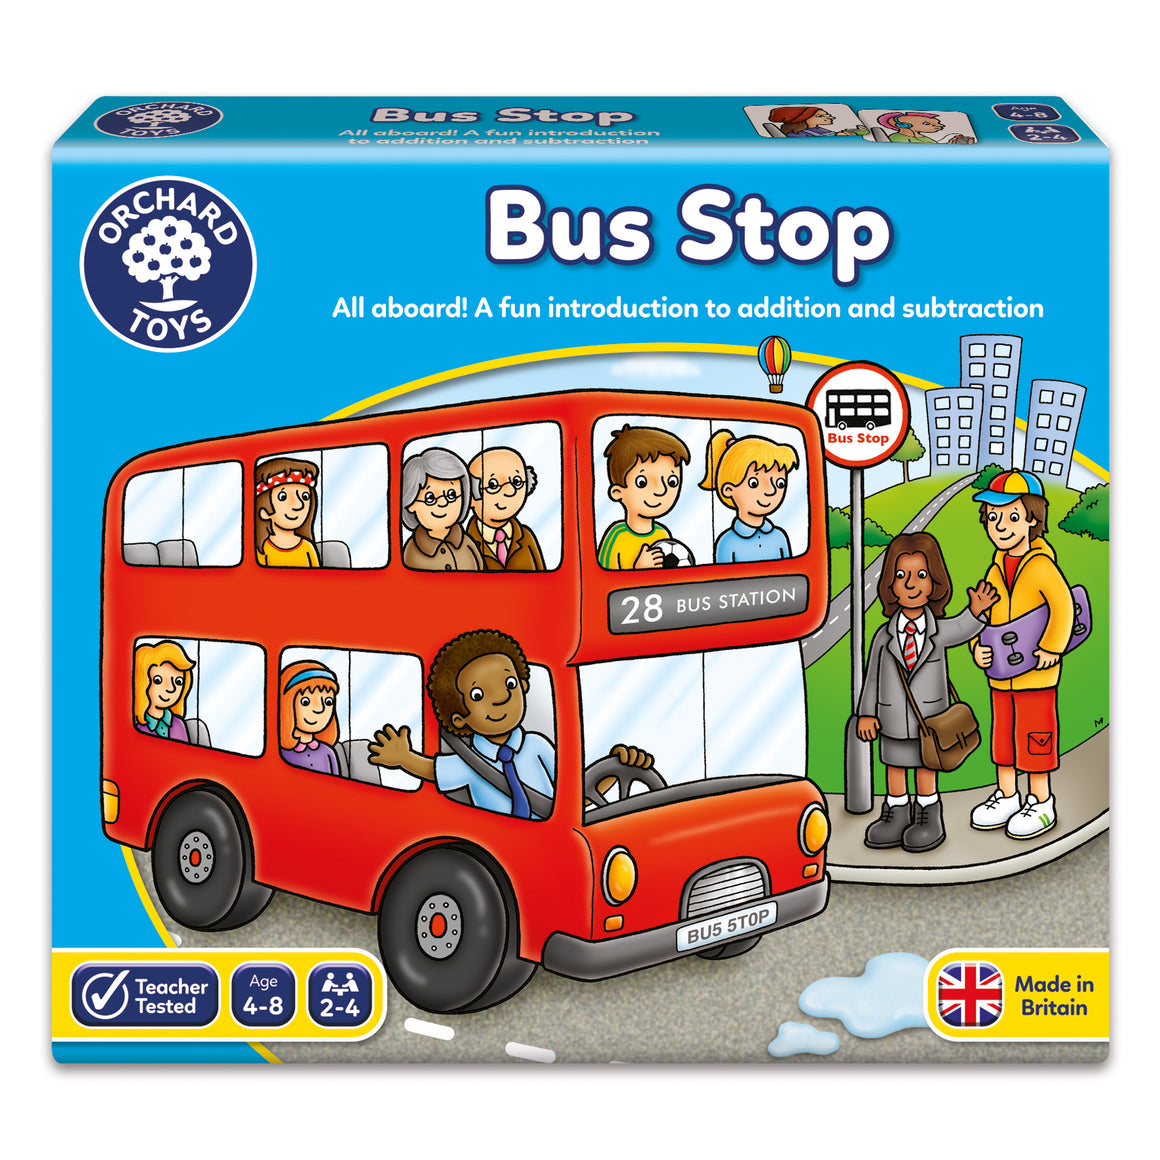 Bus stop - The Tiny Toy Store